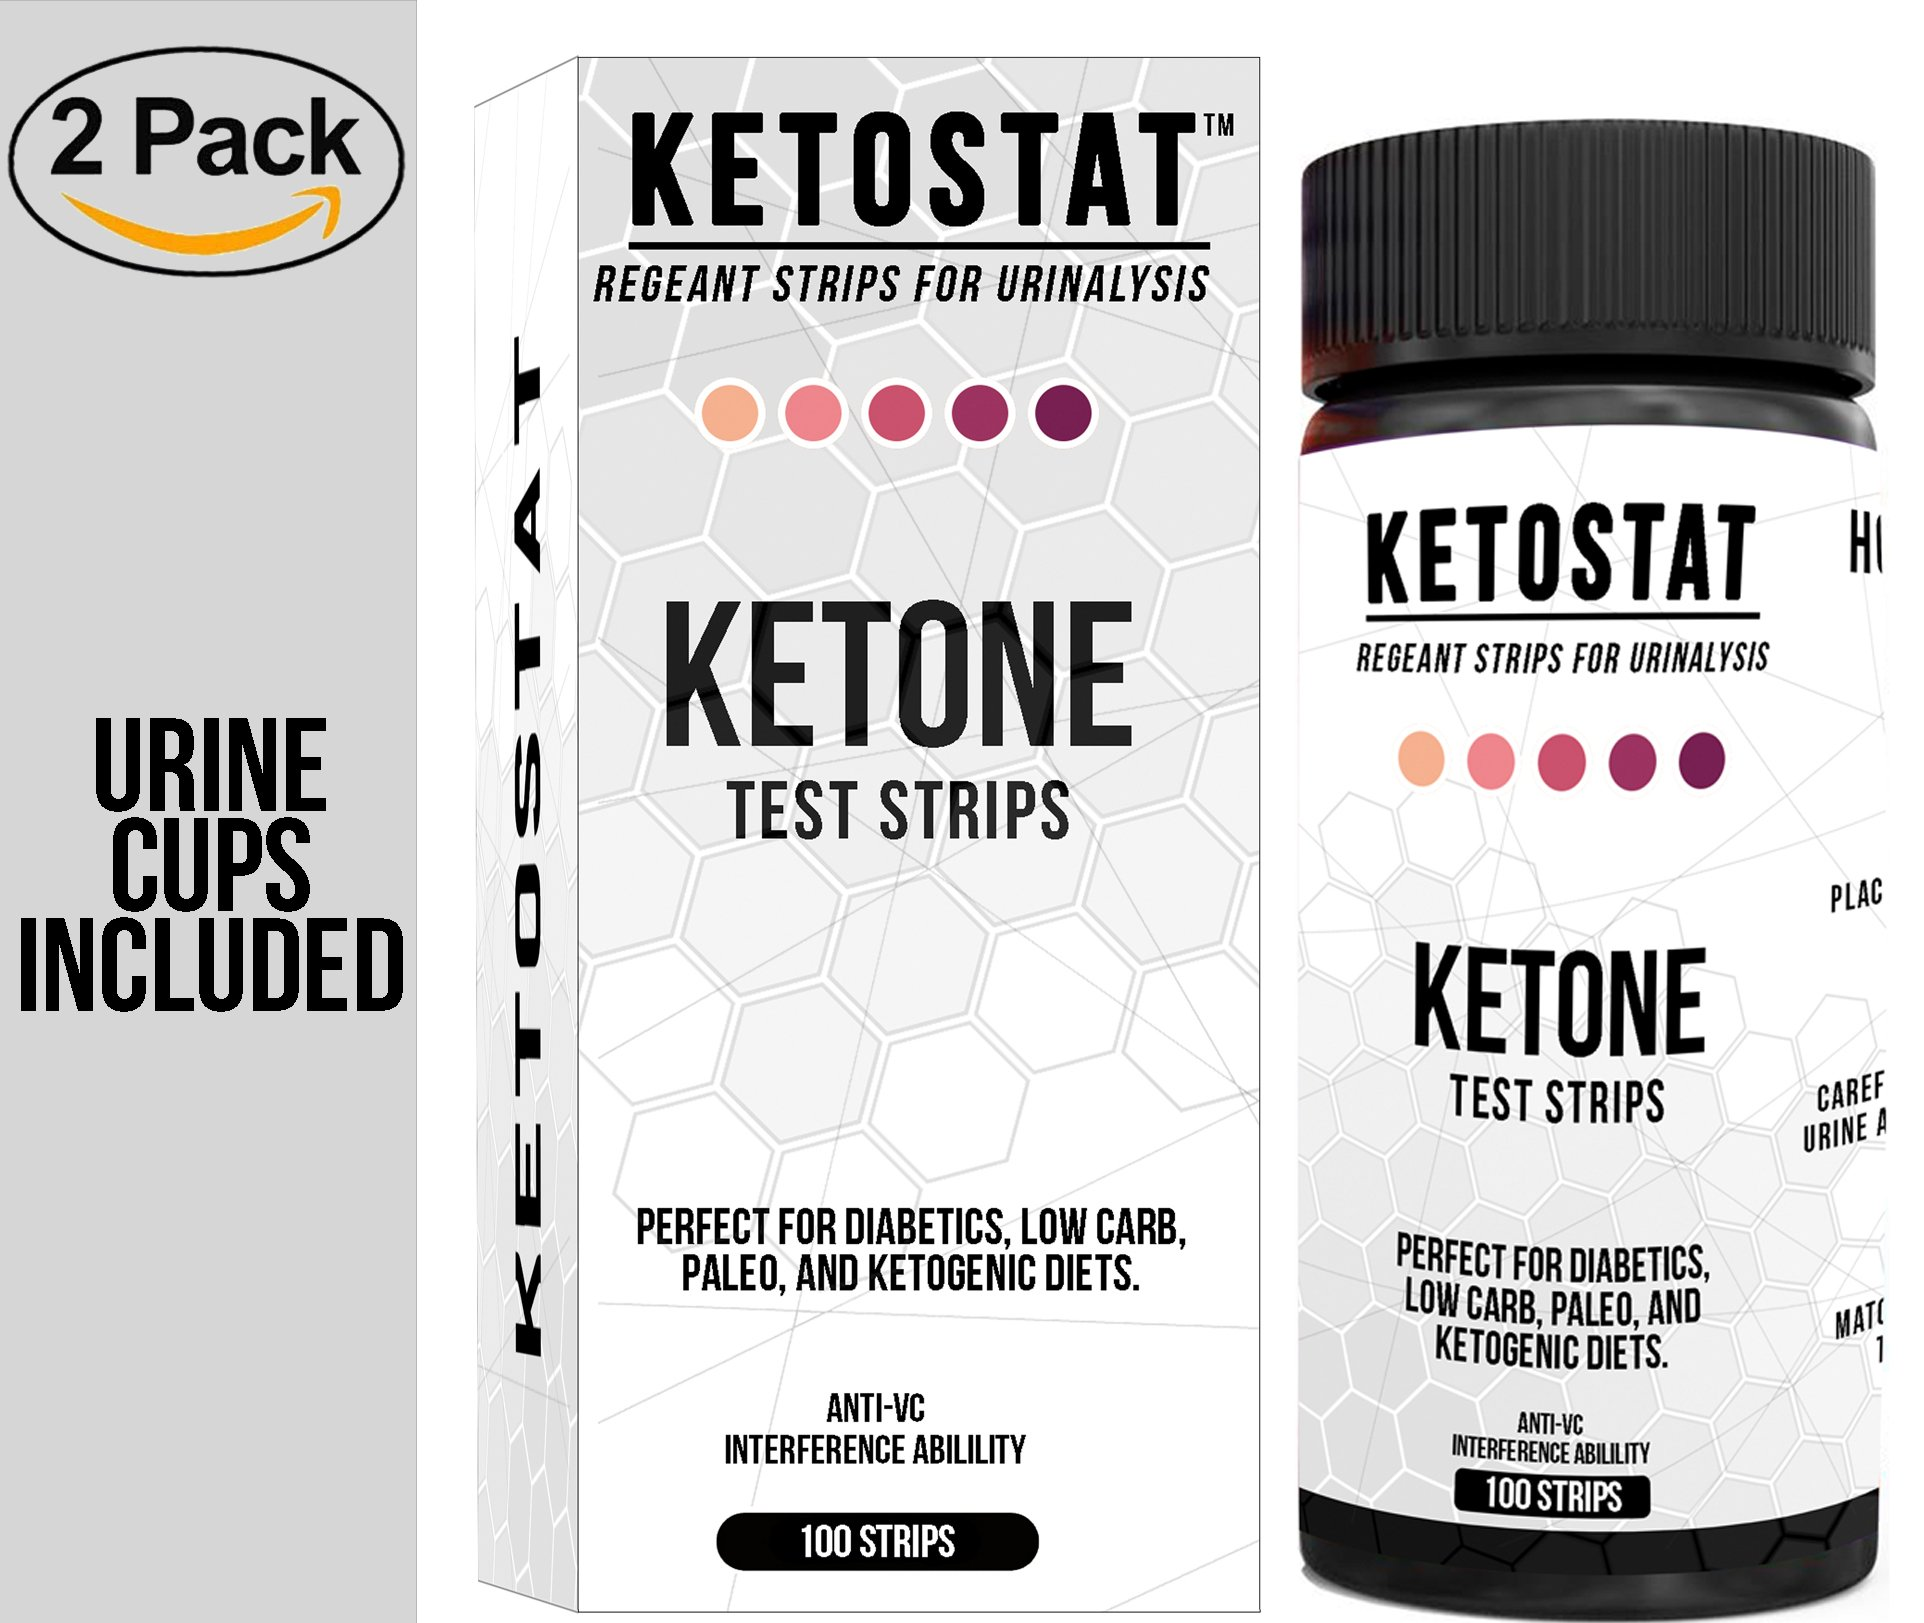 2 Bottles(200ct) Professional Grade Ketone Test Strips to Test Ketosis by Ketostat | for Low Carb, Atkins, Diabetics, and The Ketogenic Diet| Includes Two 100 Keto Test Strip Bottles with 2 Urine Cup